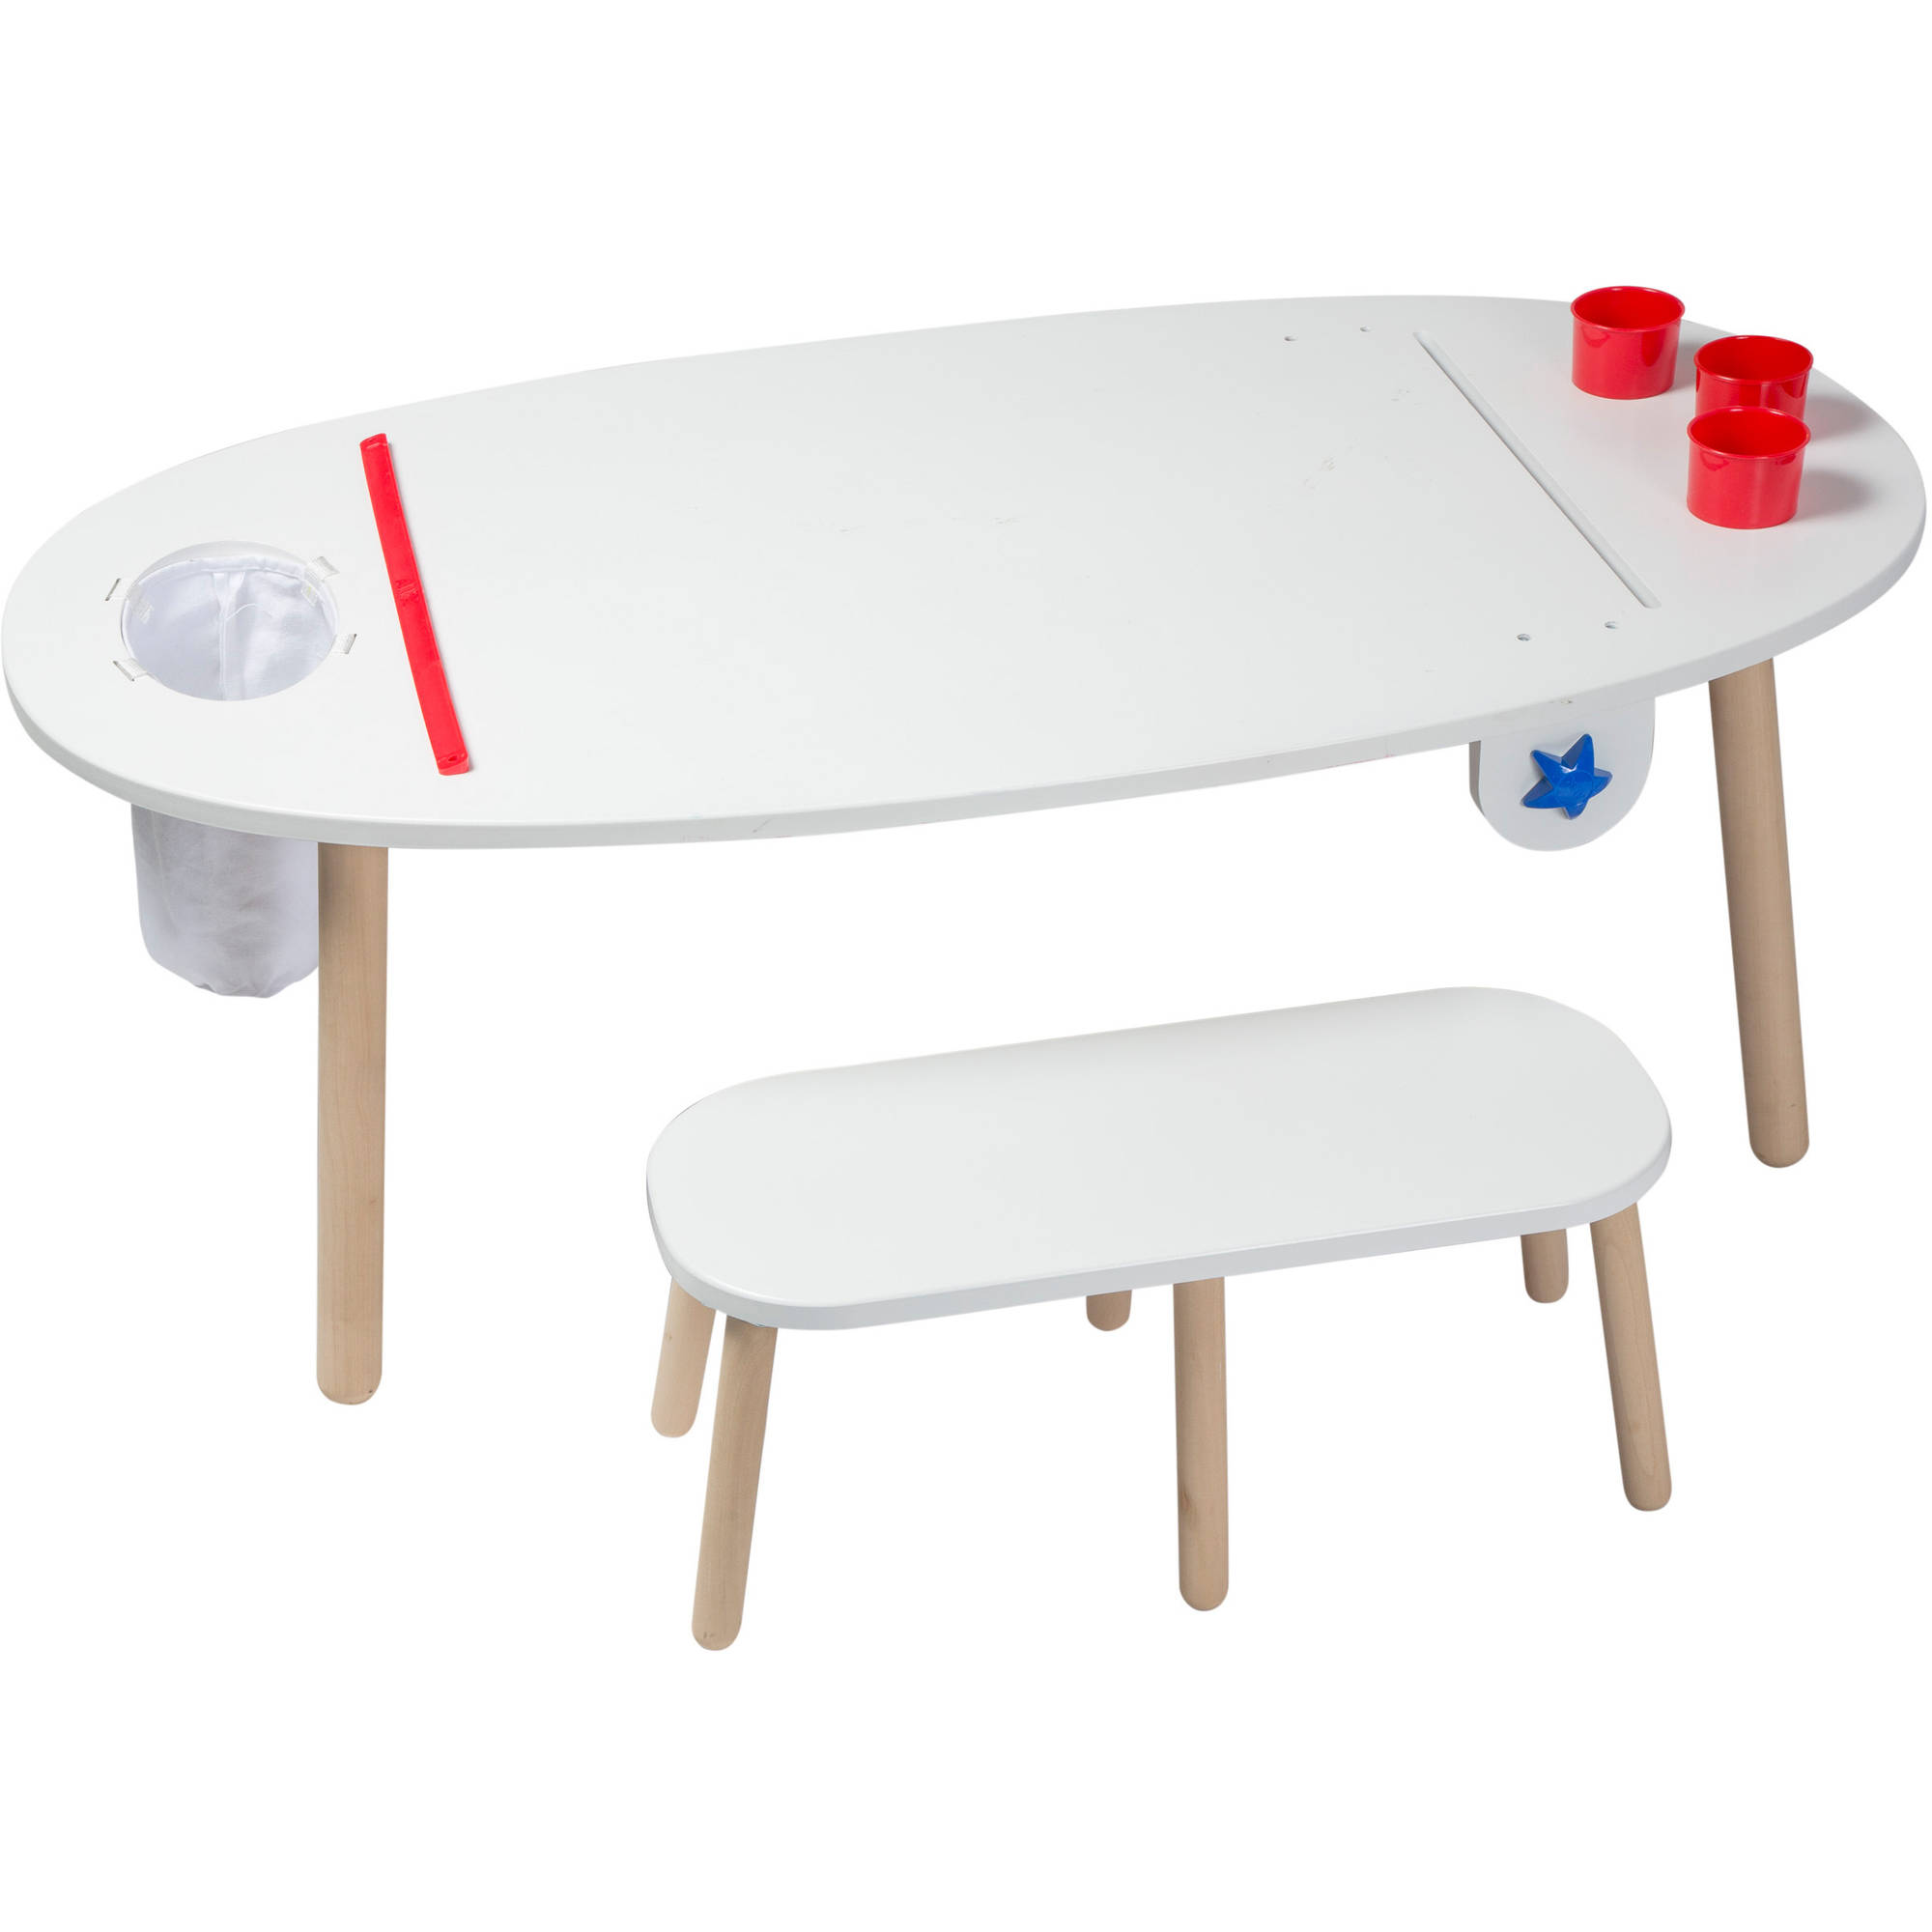 ALEX Toys Artist Studio Super Art Table, White